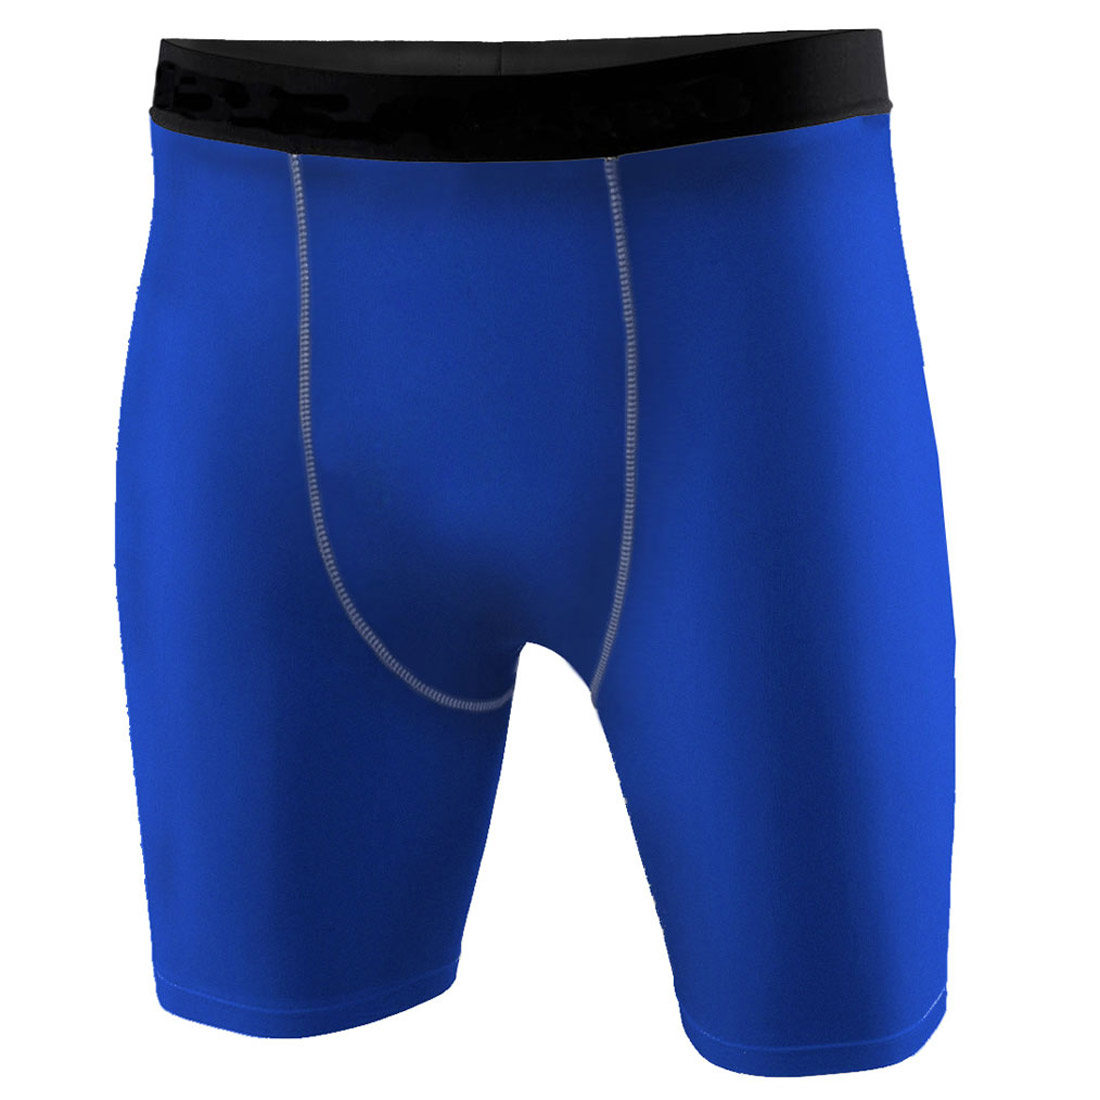 Find great deals on eBay for track compression shorts. Shop with confidence.